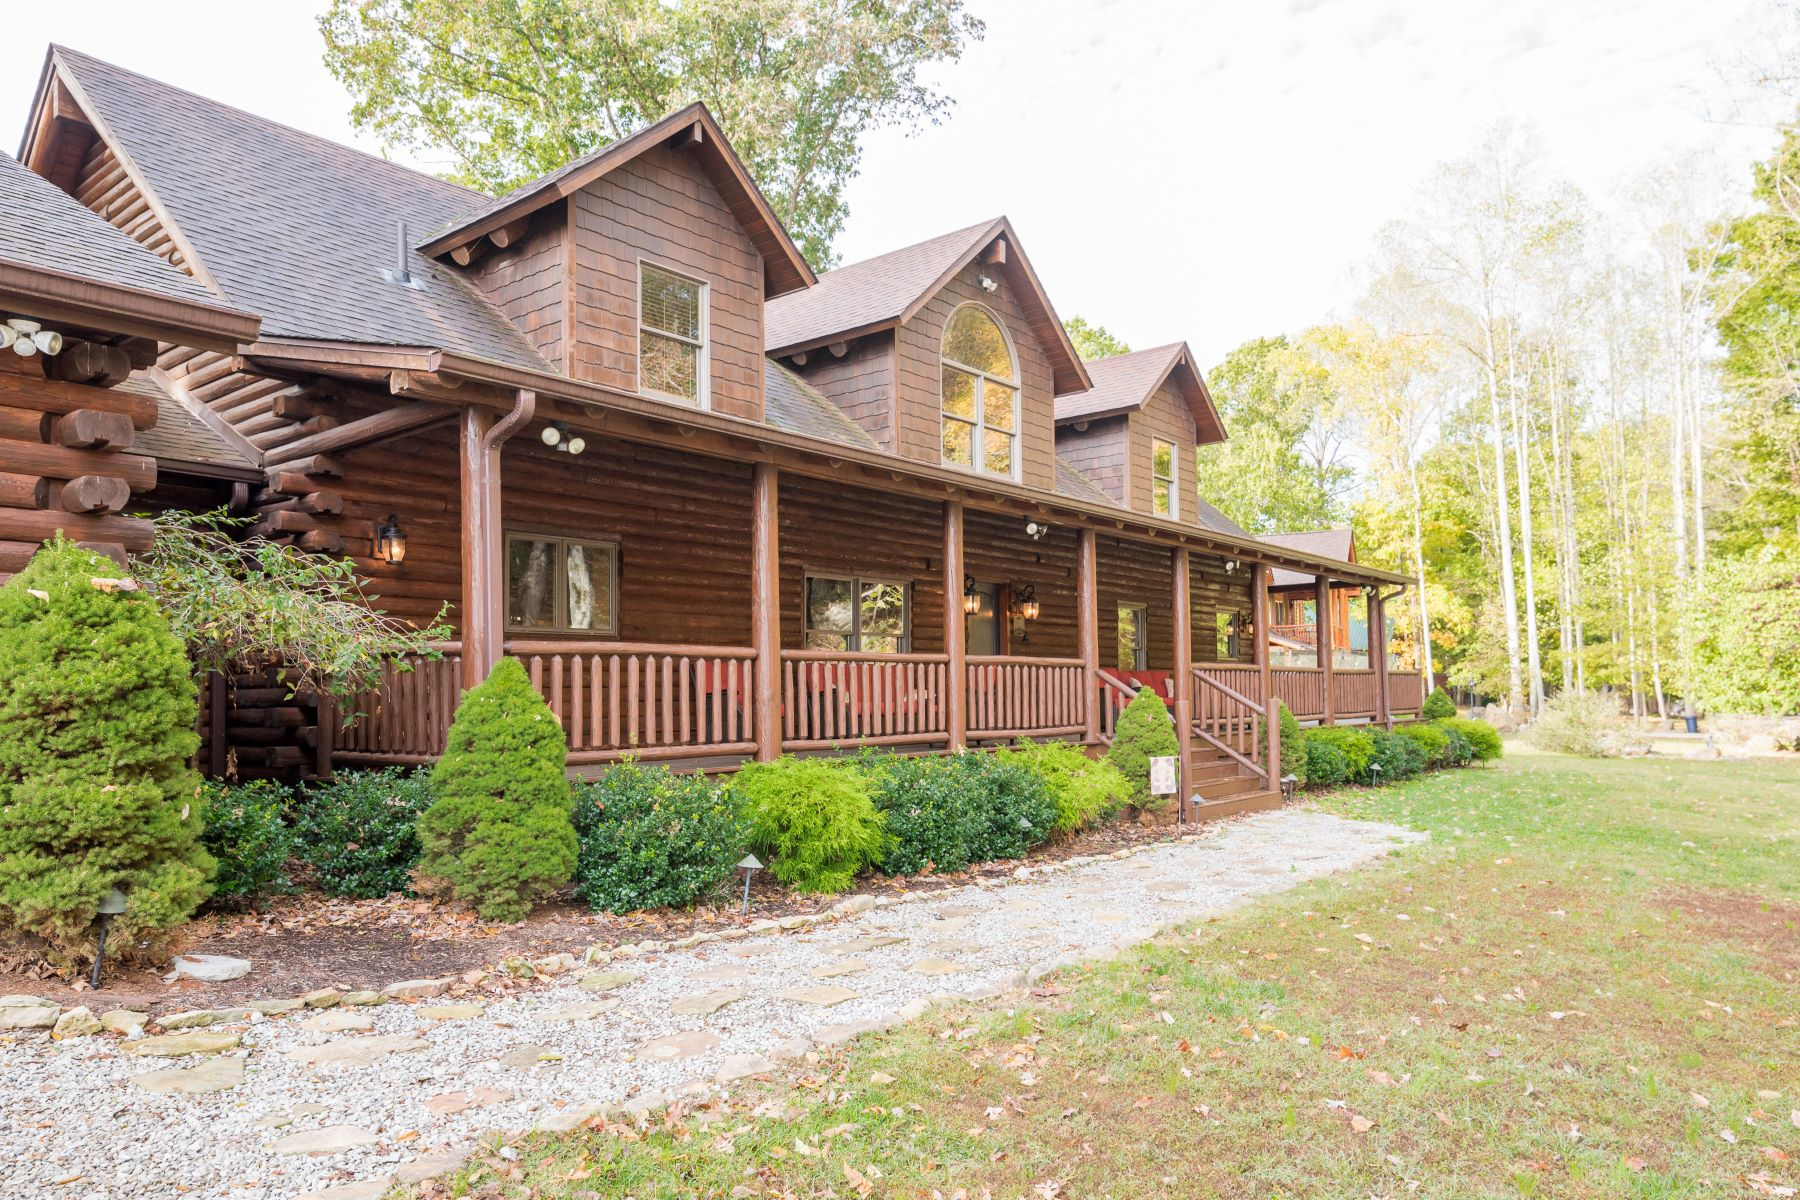 Single Family Homes for Sale at 2411 Dickeys Mill Road Leitchfield, Kentucky 42754 United States